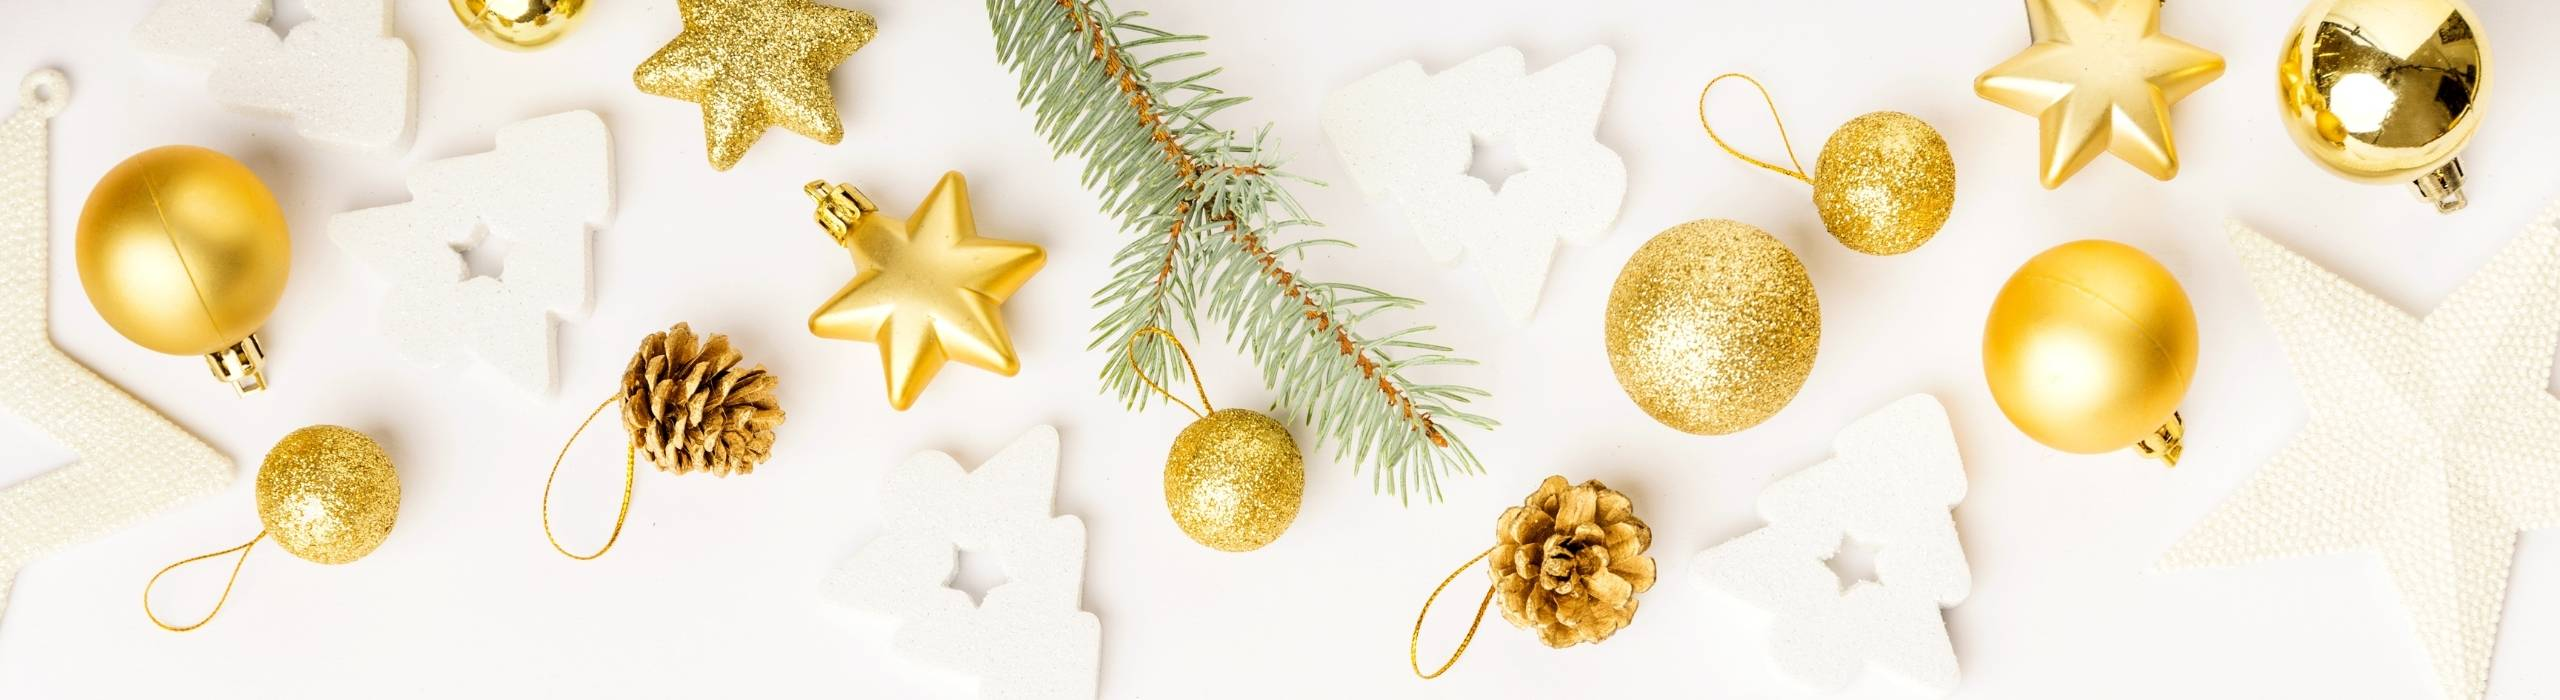 holiday decorations against light beige background